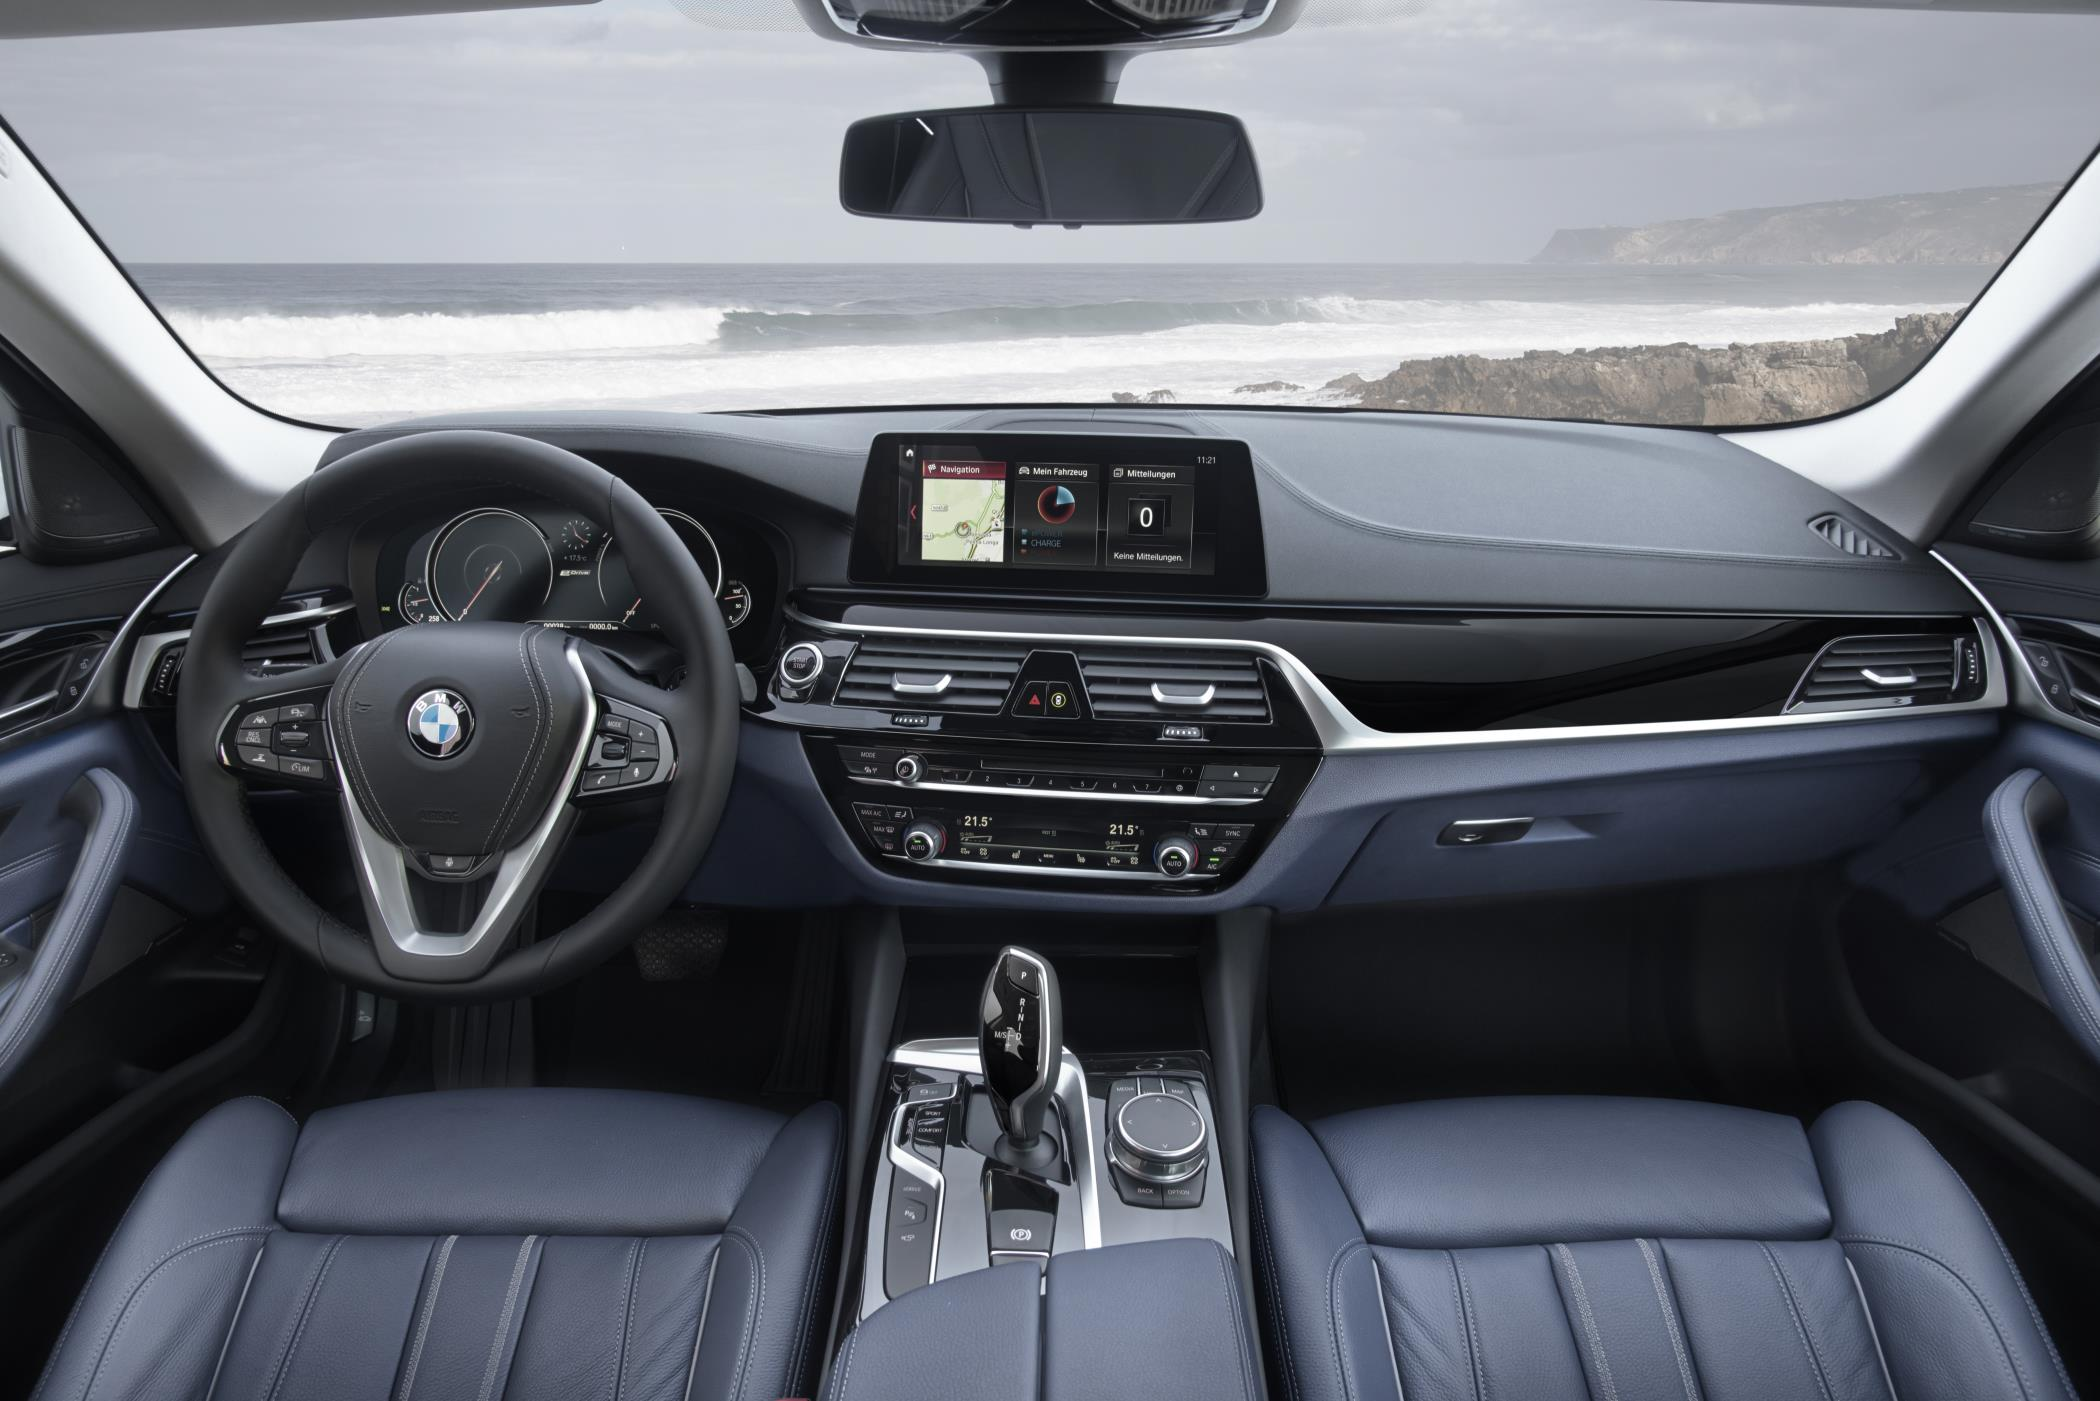 BMW 5 Series front cabin